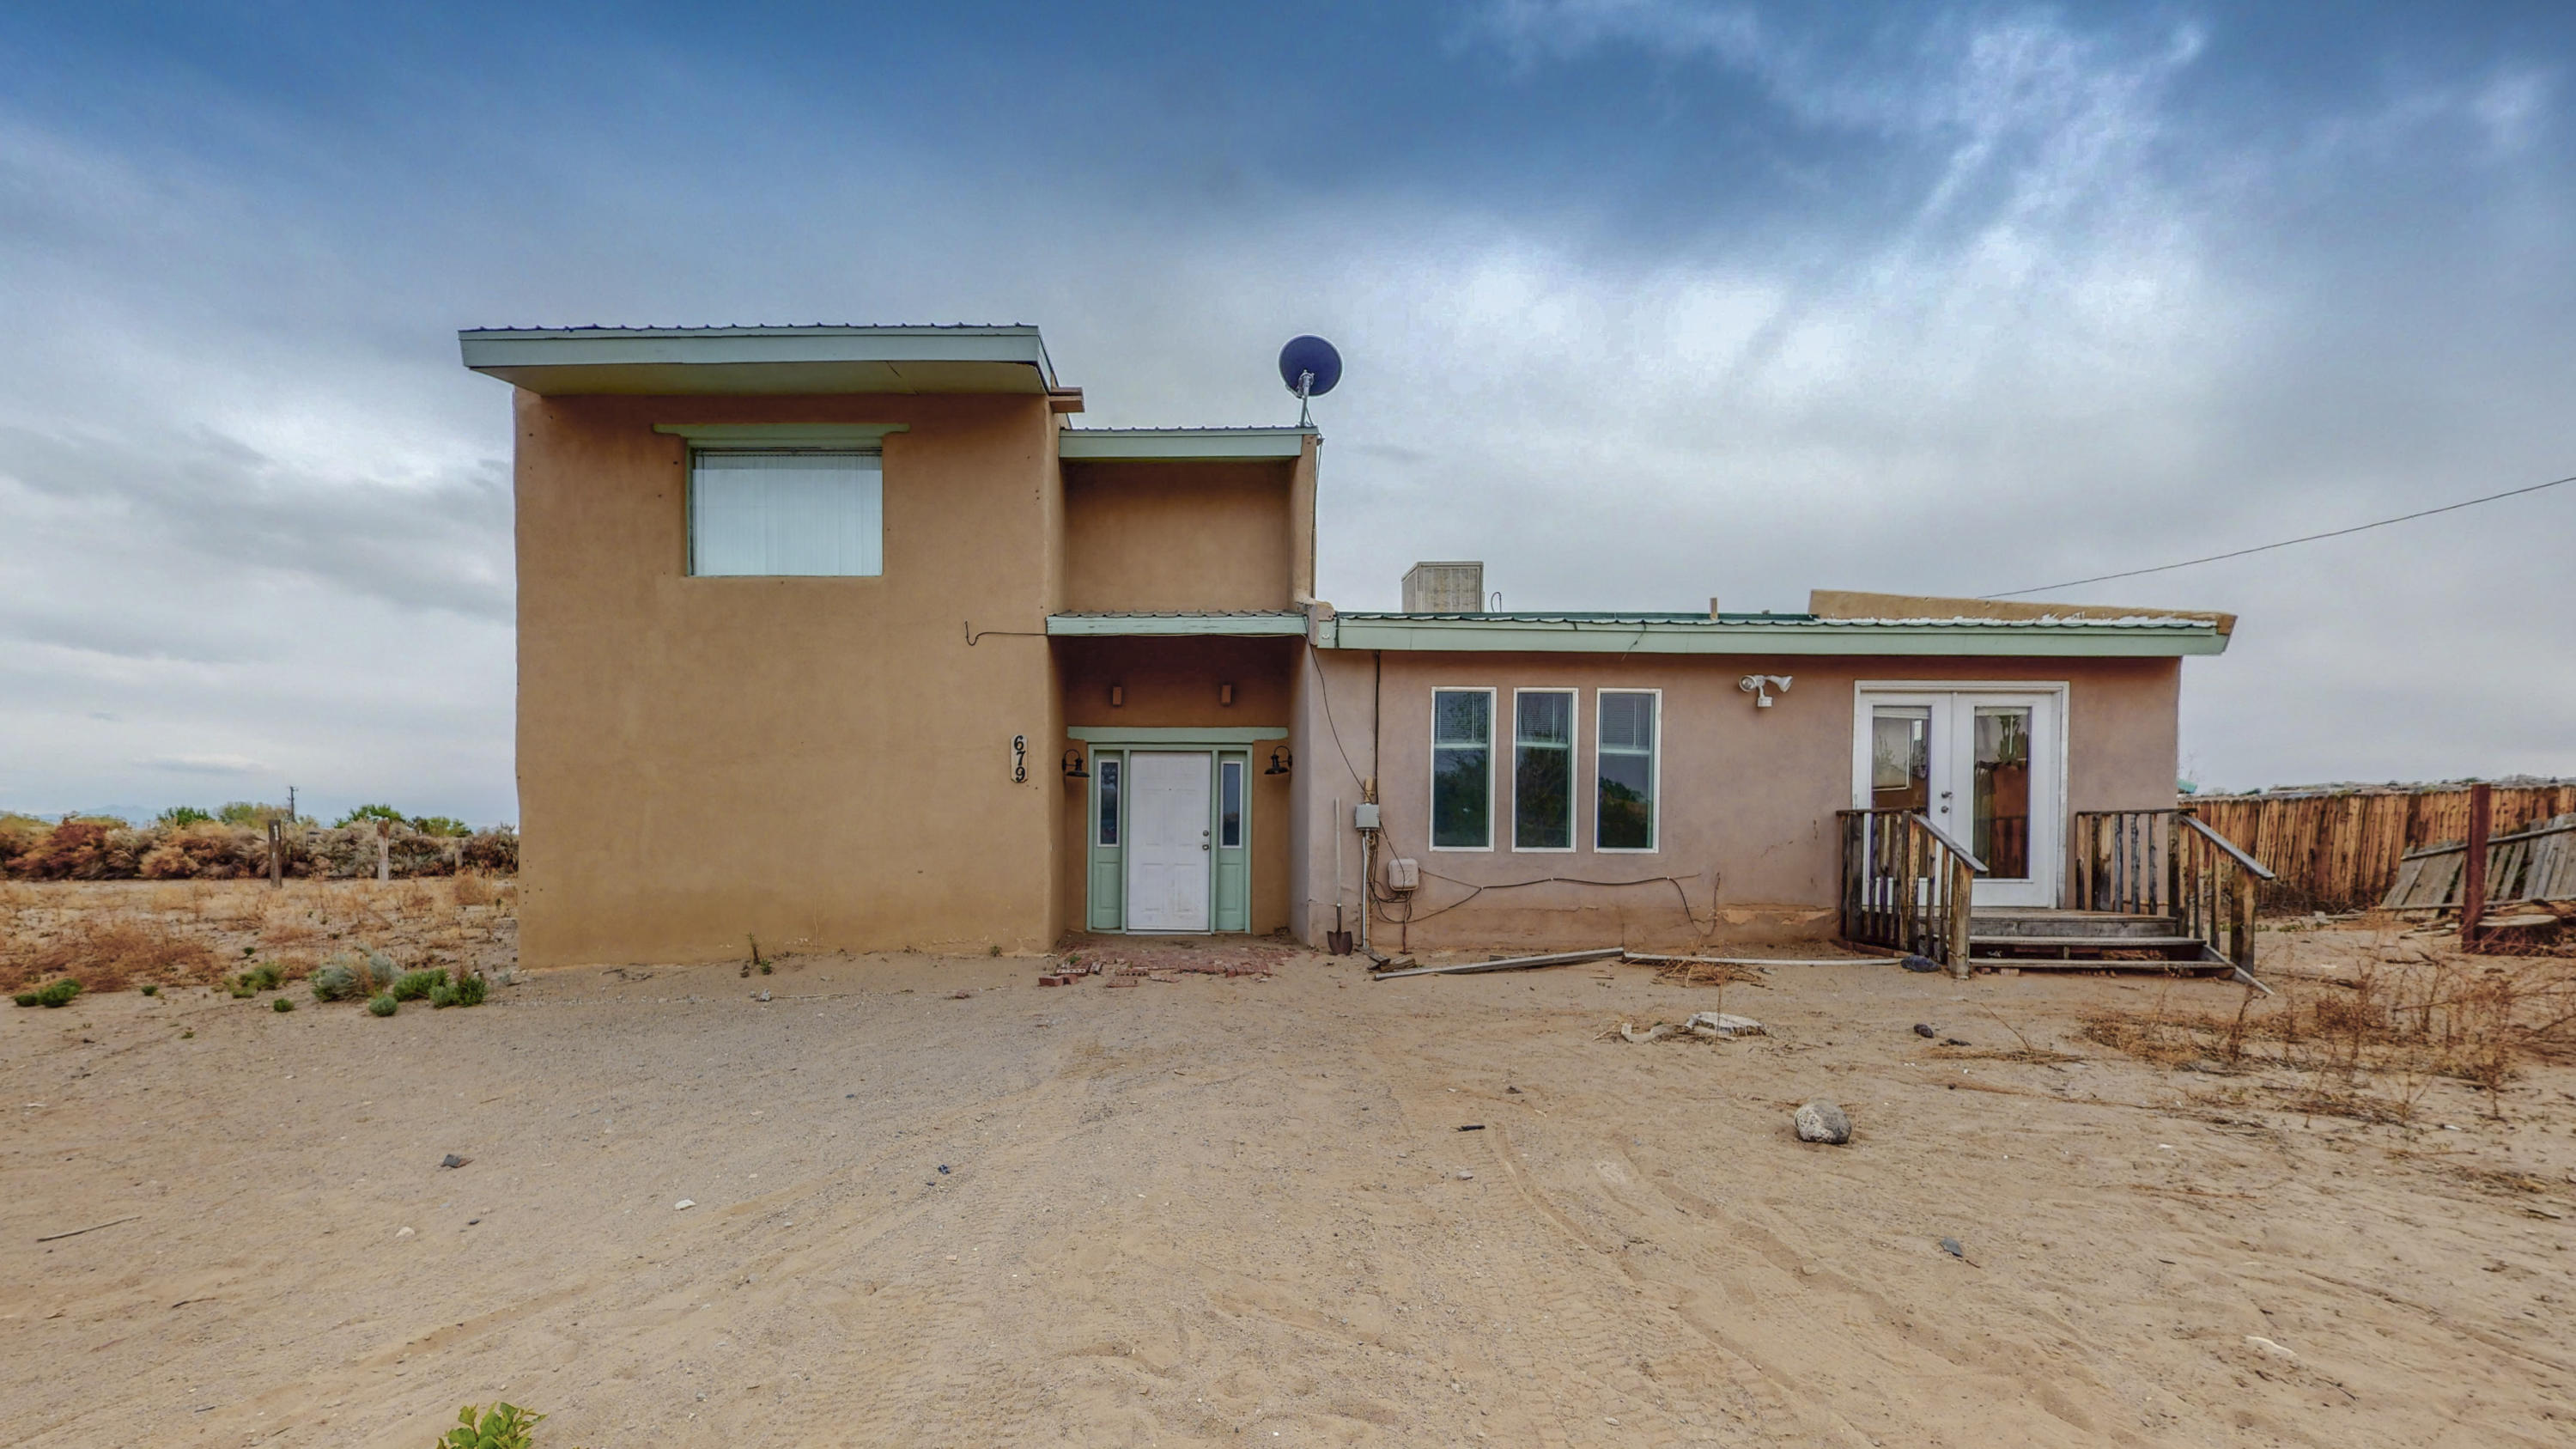 SOLD AS IS part of an estate, home is located on a very private Corrales road with a full acre of horse property. 3 bedrooms and 2 baths with an open floor plan, multiple levels provide great views from most bedrooms. Stucco needs some TLC but most of home is in great shape.